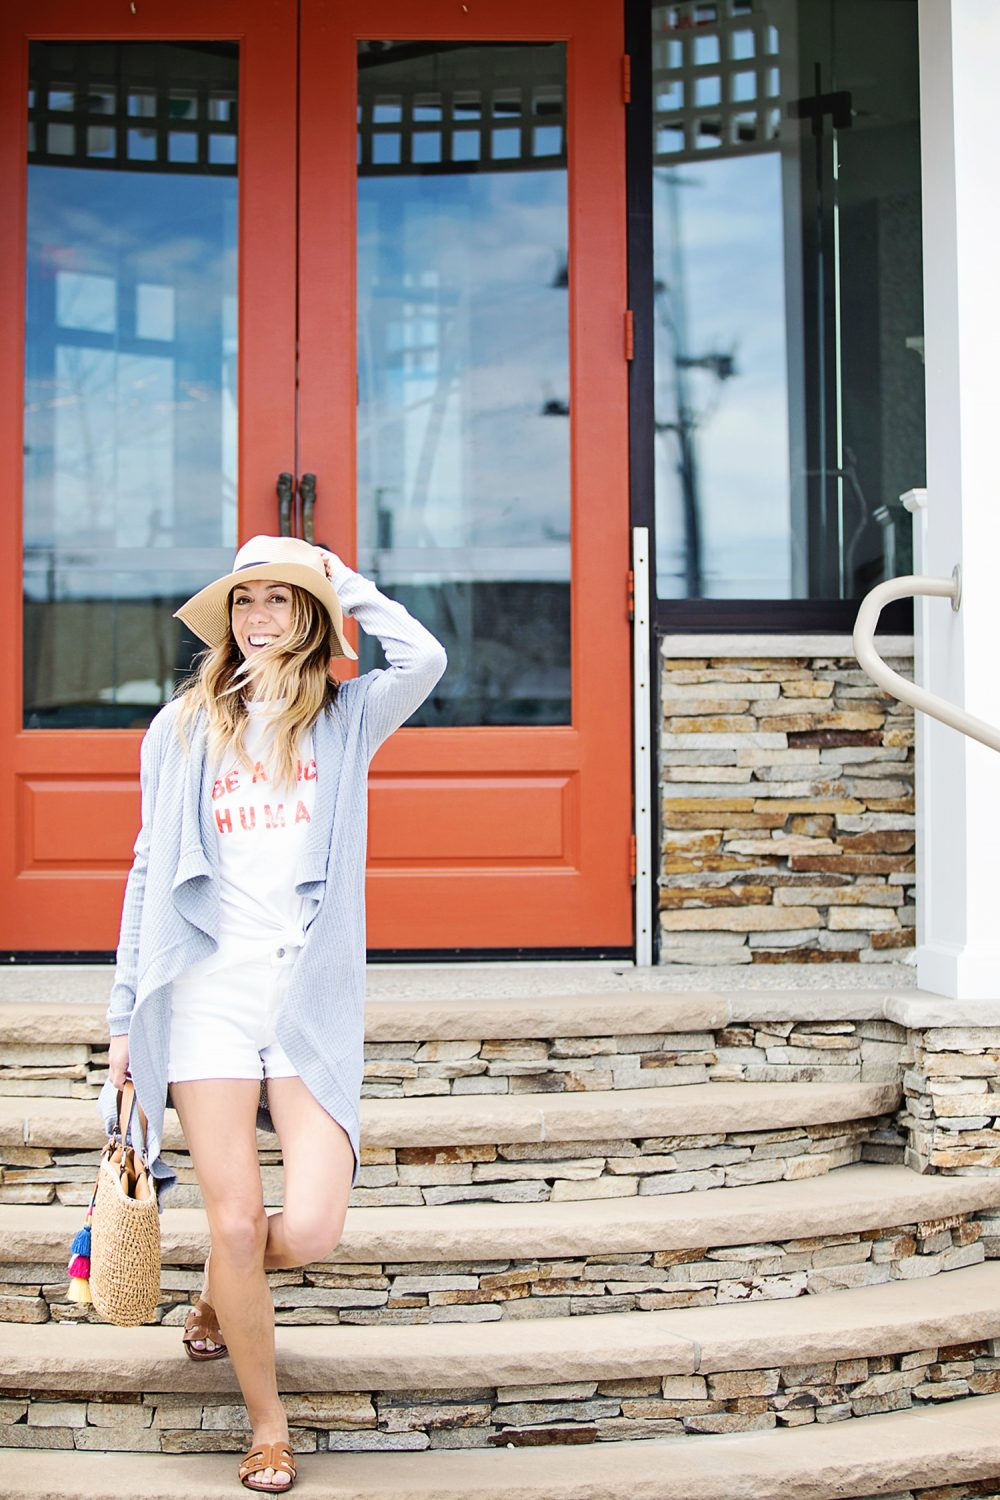 The Motherchic wearing J.Crew white shorts and graphic tee